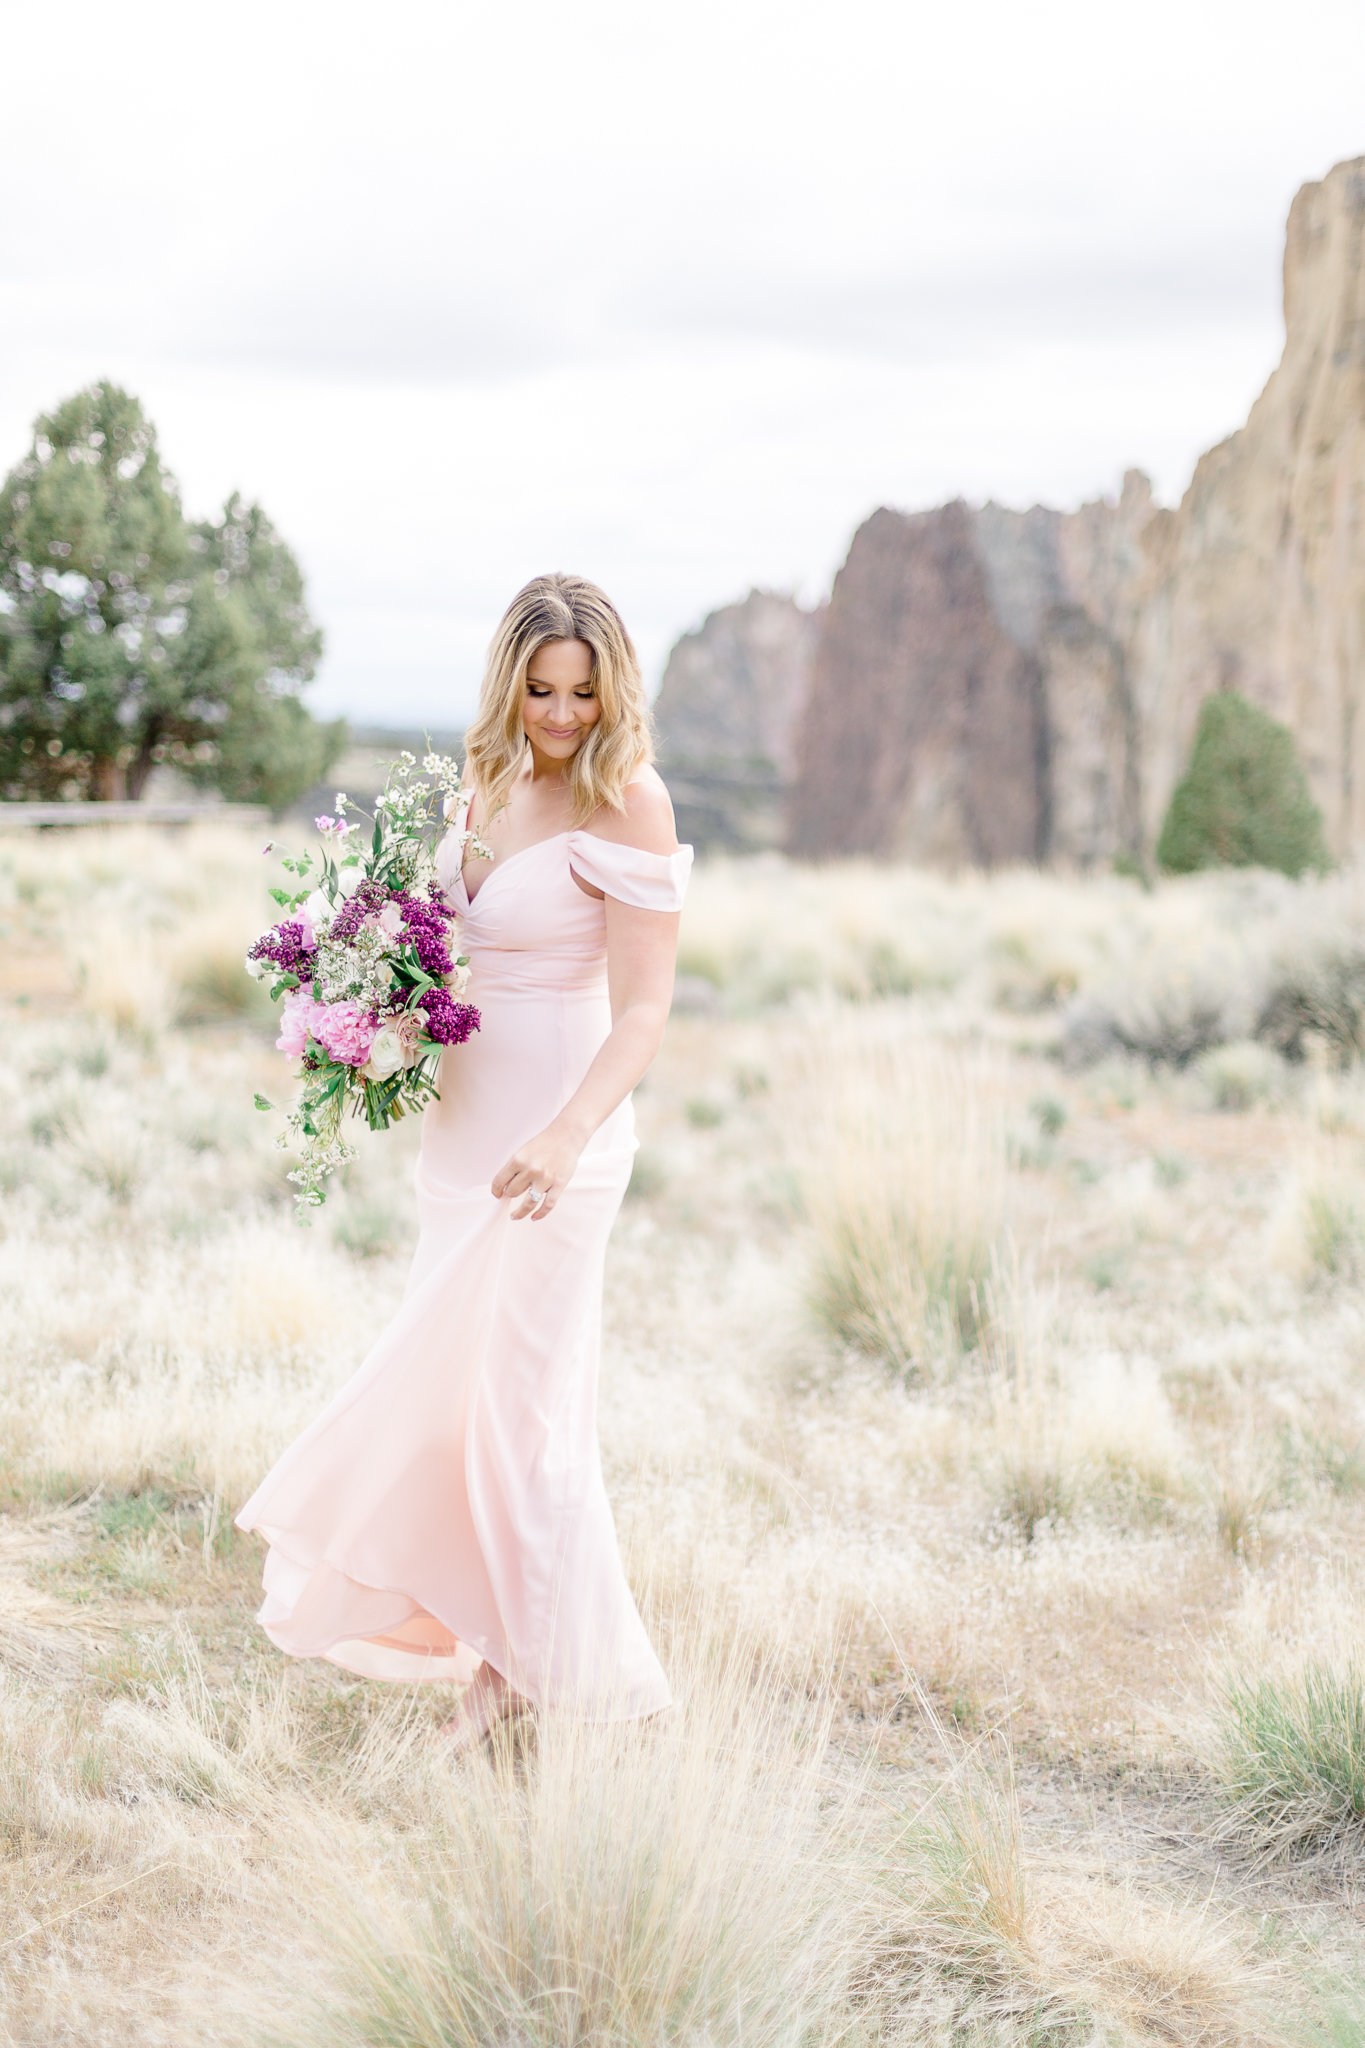 photographe-seance-anniversaire-de-mariage-smith-rock-state-park-oregon-lisa-renault-photographie-wedding-anniversary-session-photographer-12